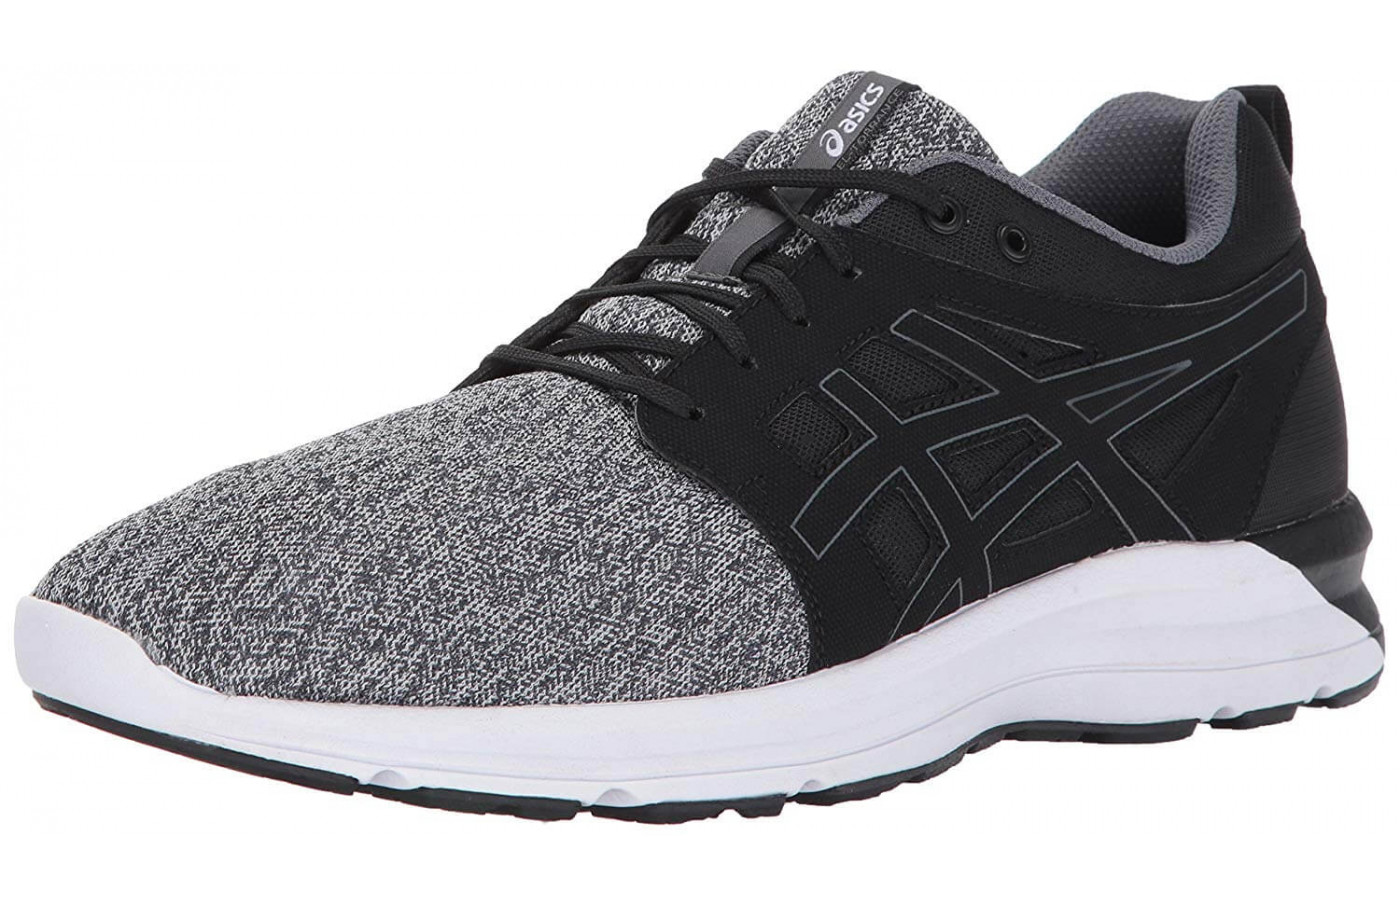 e8ae11ebc8f Asics Gel Torrance Reviewed - To Buy or Not in May 2019